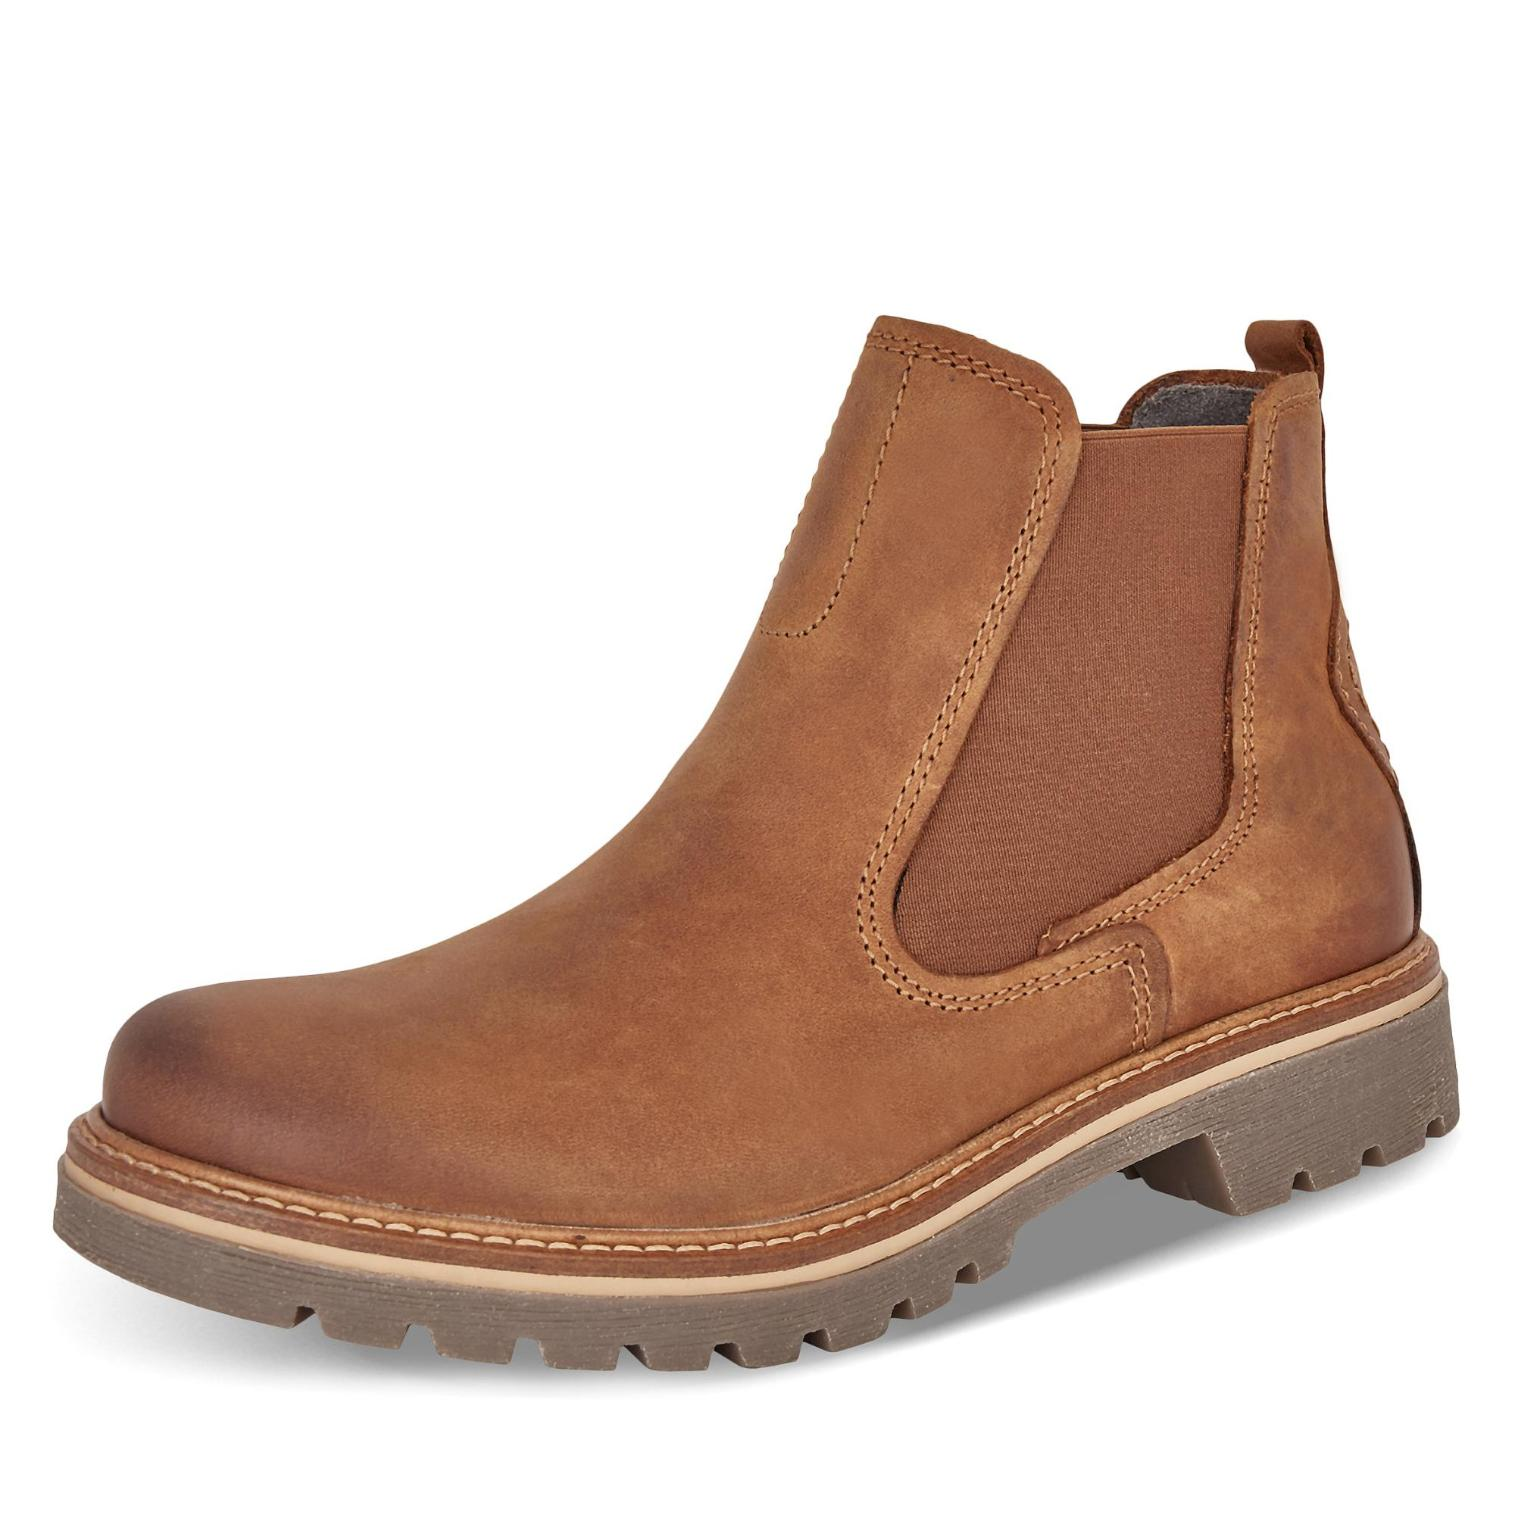 best service e5681 6bff6 Camel Farbe Active Canberra Chelsea Boots in Farbe Camel ...